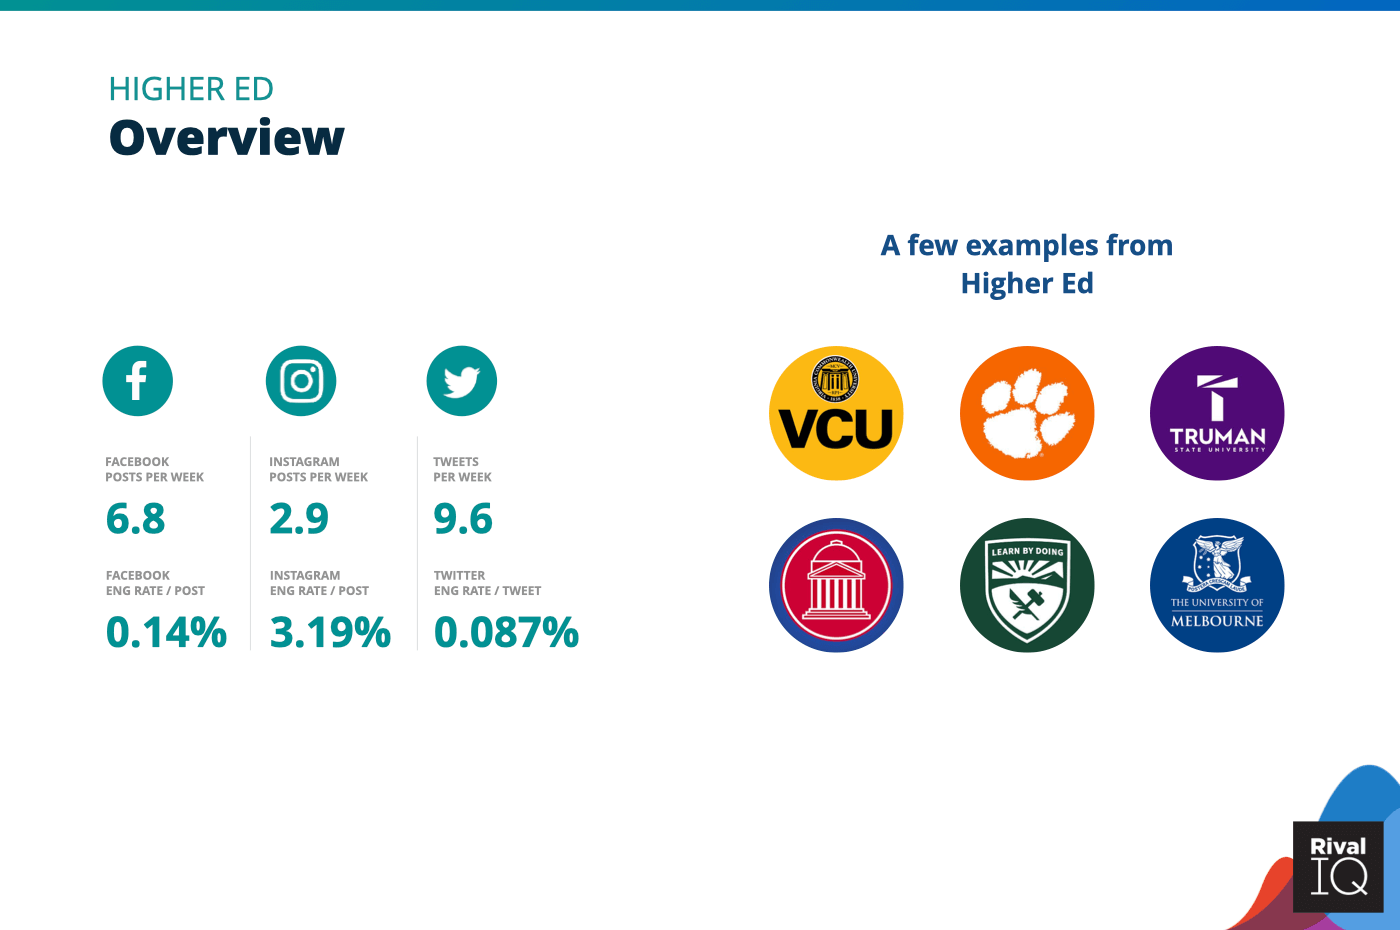 Overview of all benchmarks, Higher Ed